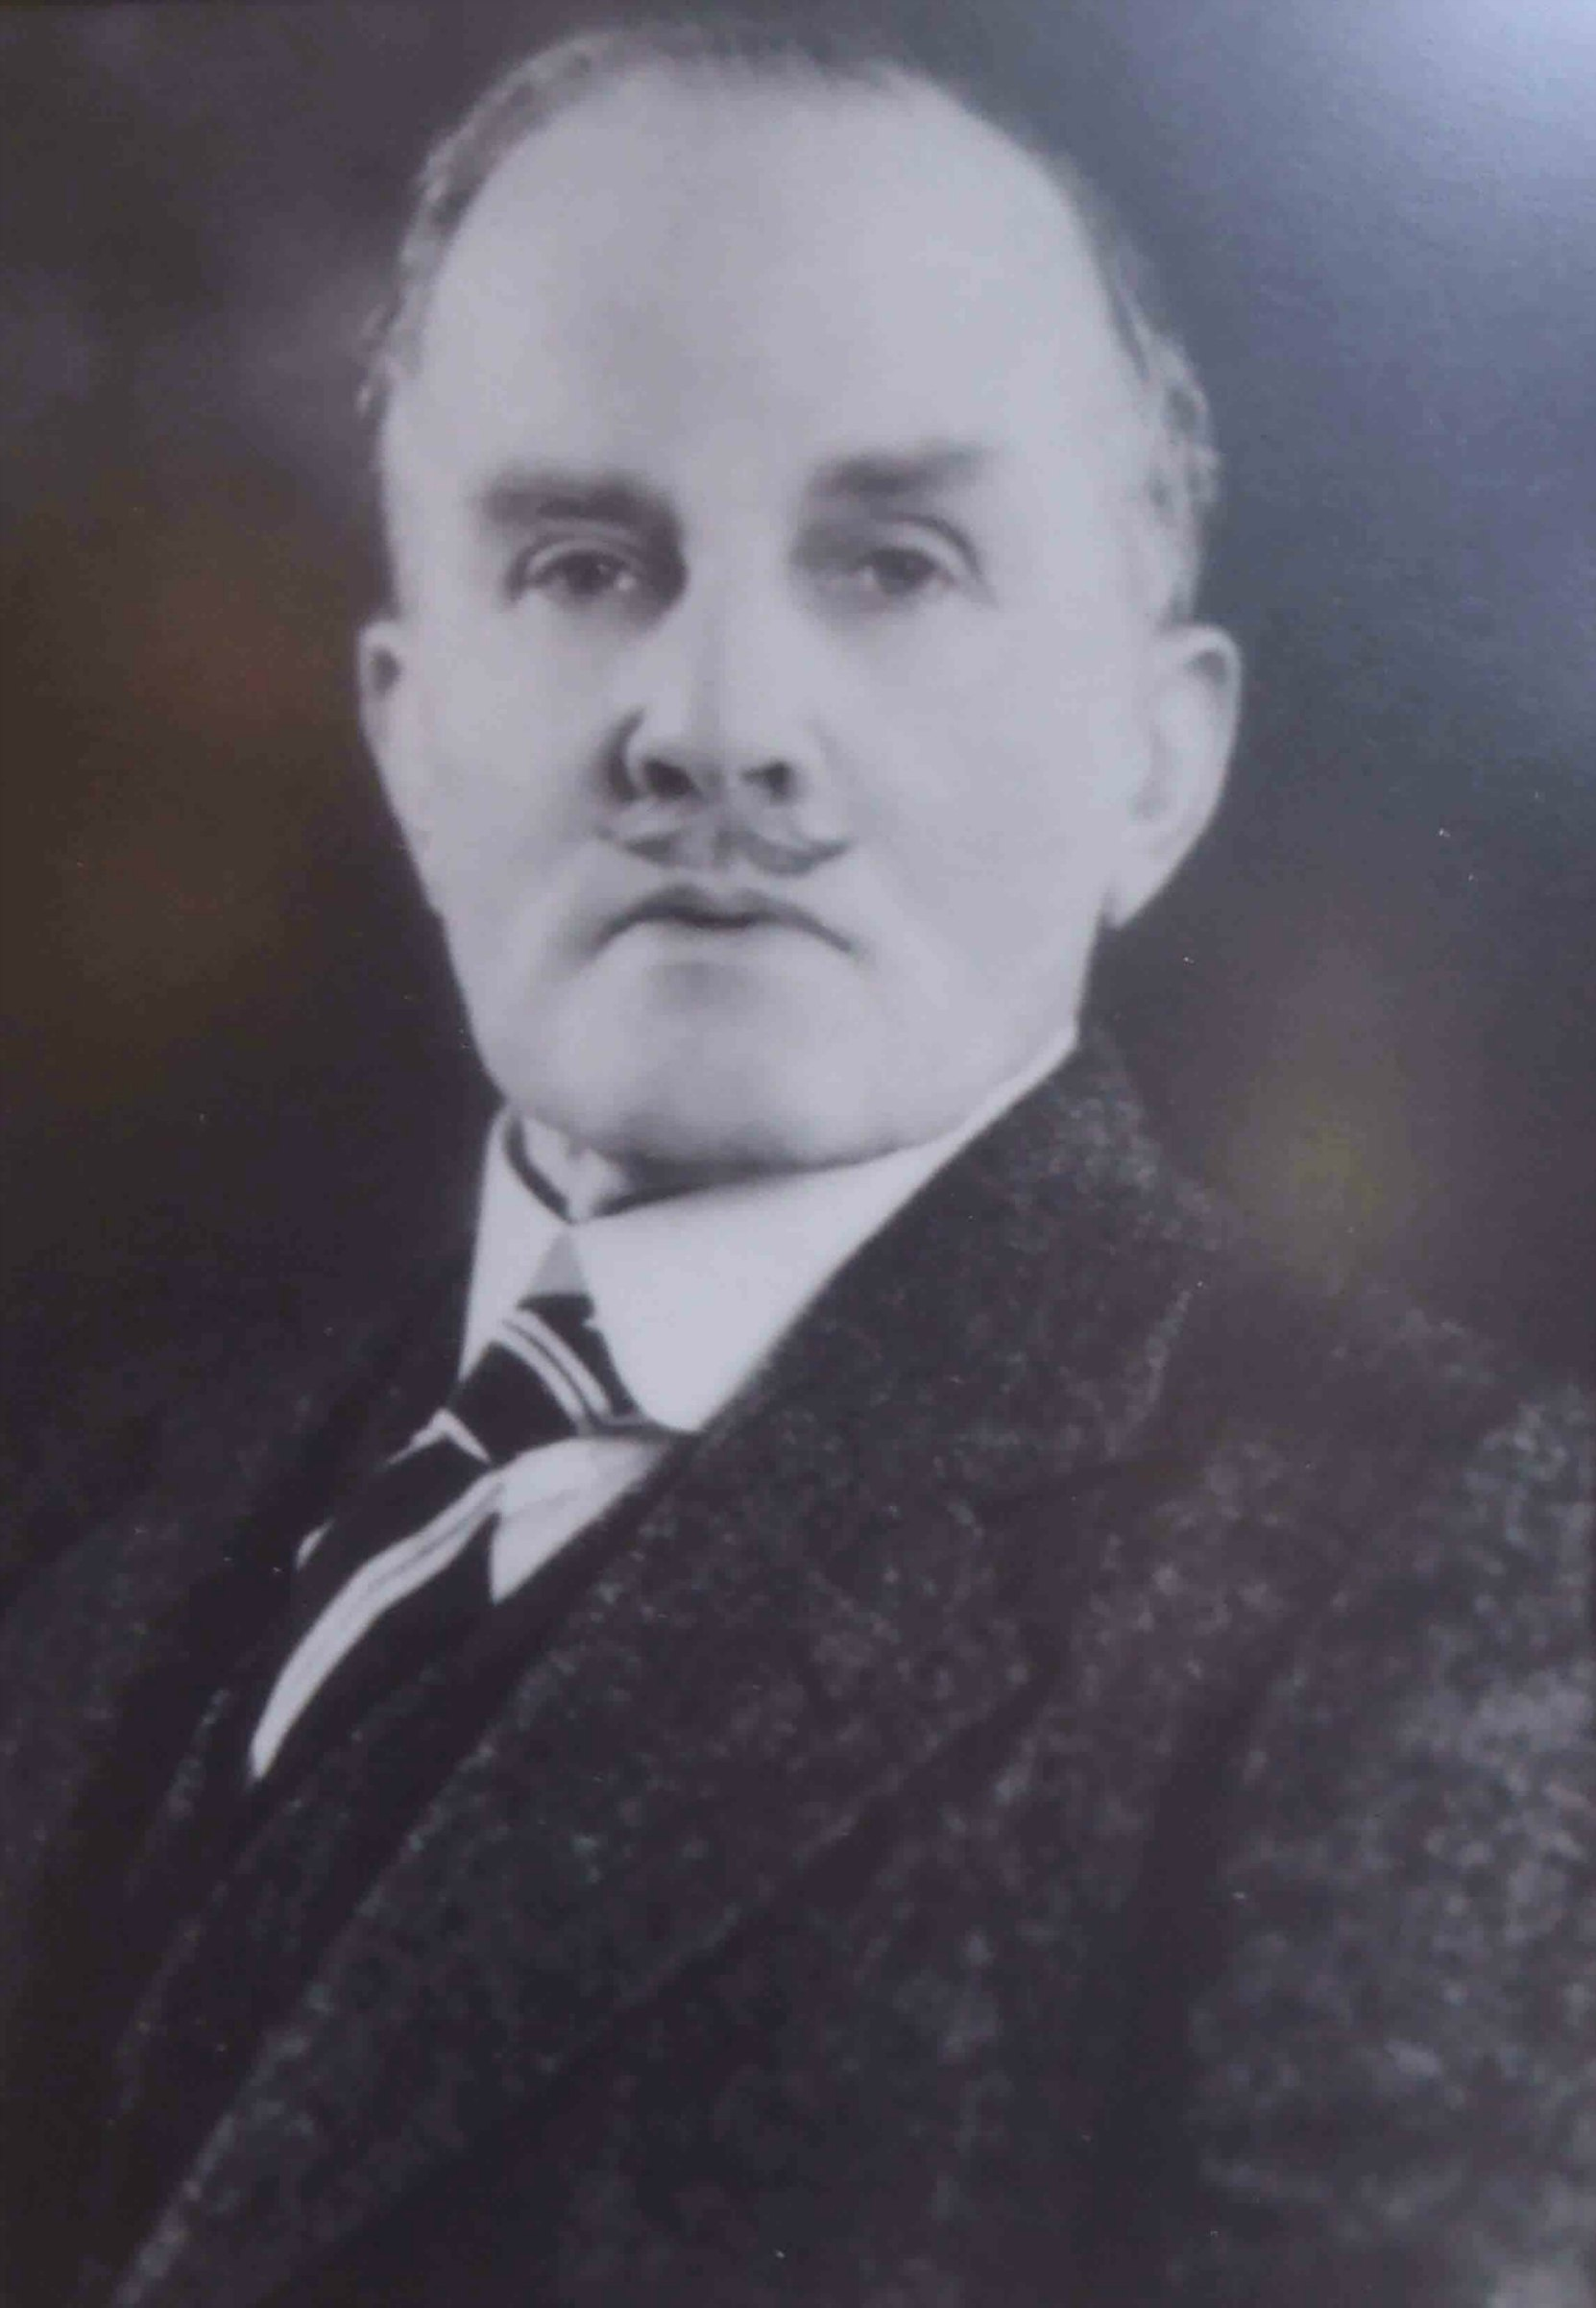 James Grieg, Past Master of Temple Lodge, No.33, Mayor of Duncan